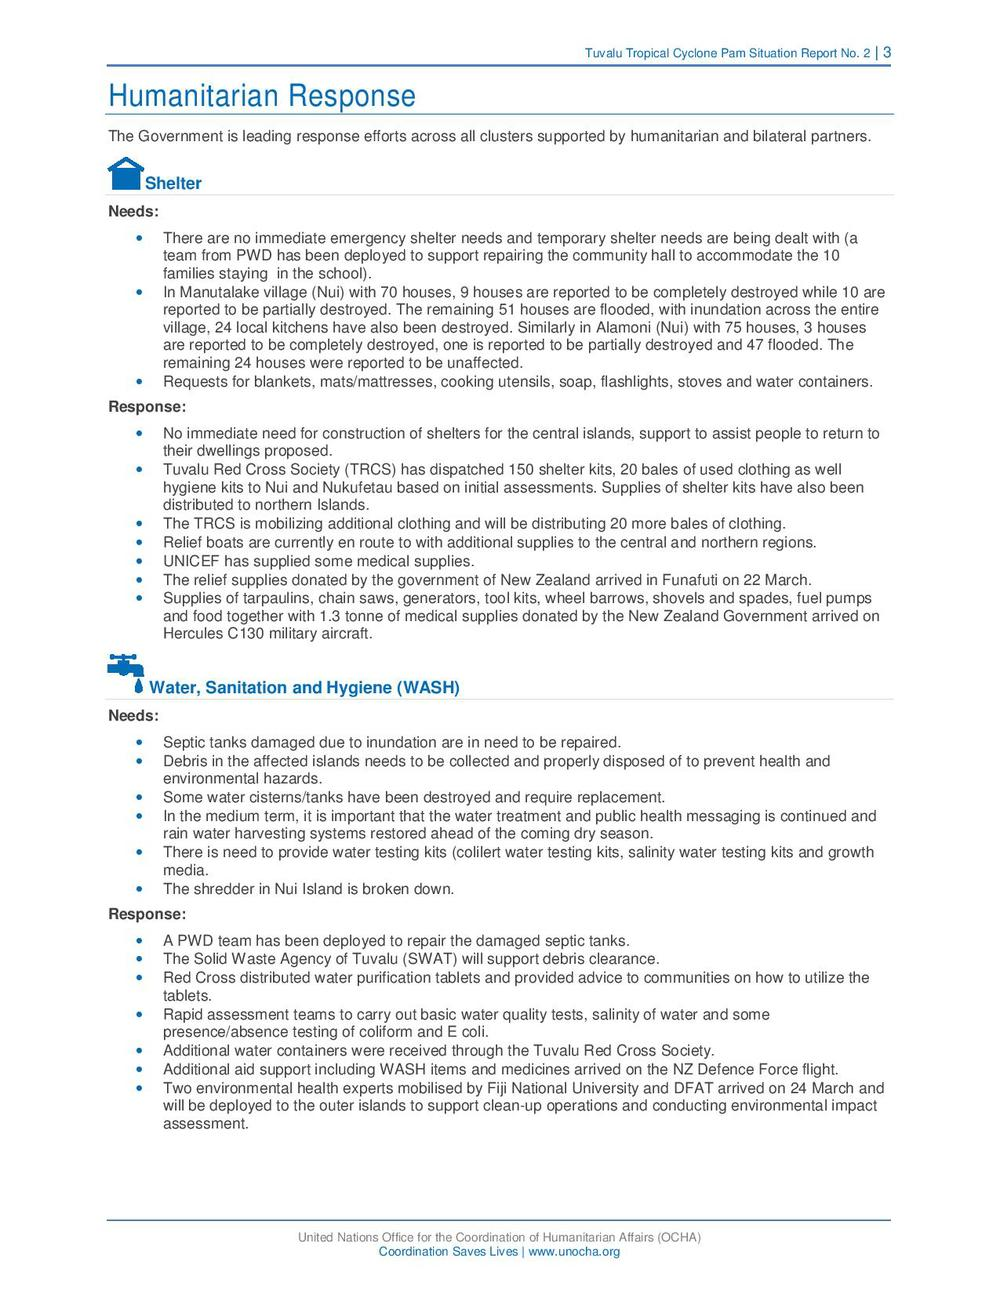 reliefweb.int_sites_reliefweb.int_files_resources_Tuvalu Tropical Cyclone Pam Situation Report No. 2-page-003.jpg